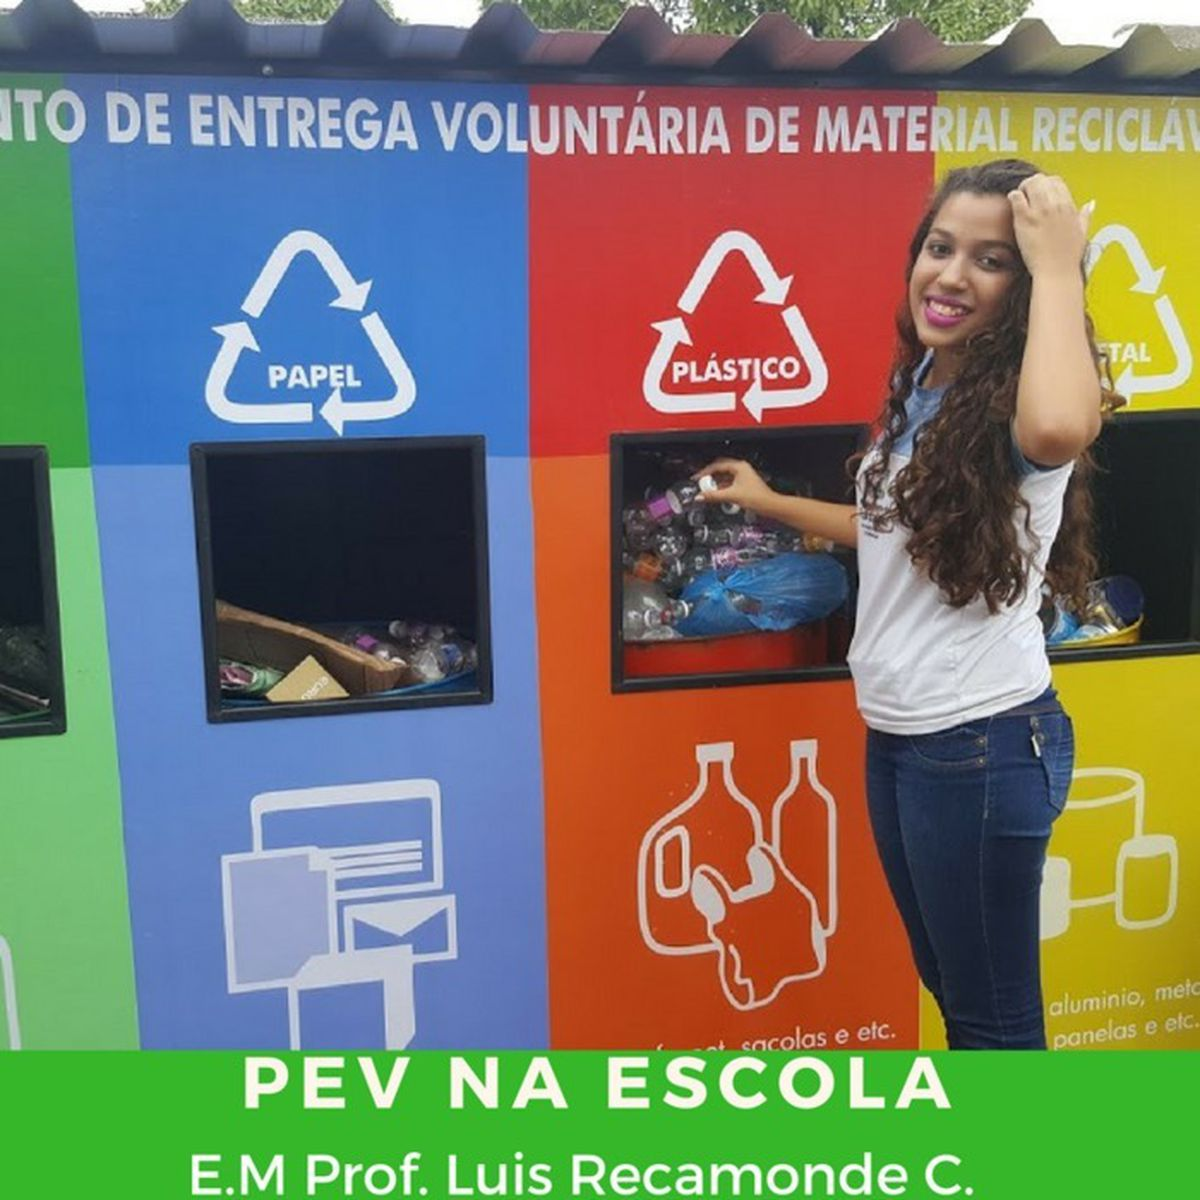 Limpa Brasil - Let's do it Escola Ponto Permanente de Recicláveis - E.M Prof. Luis Recamonde C.